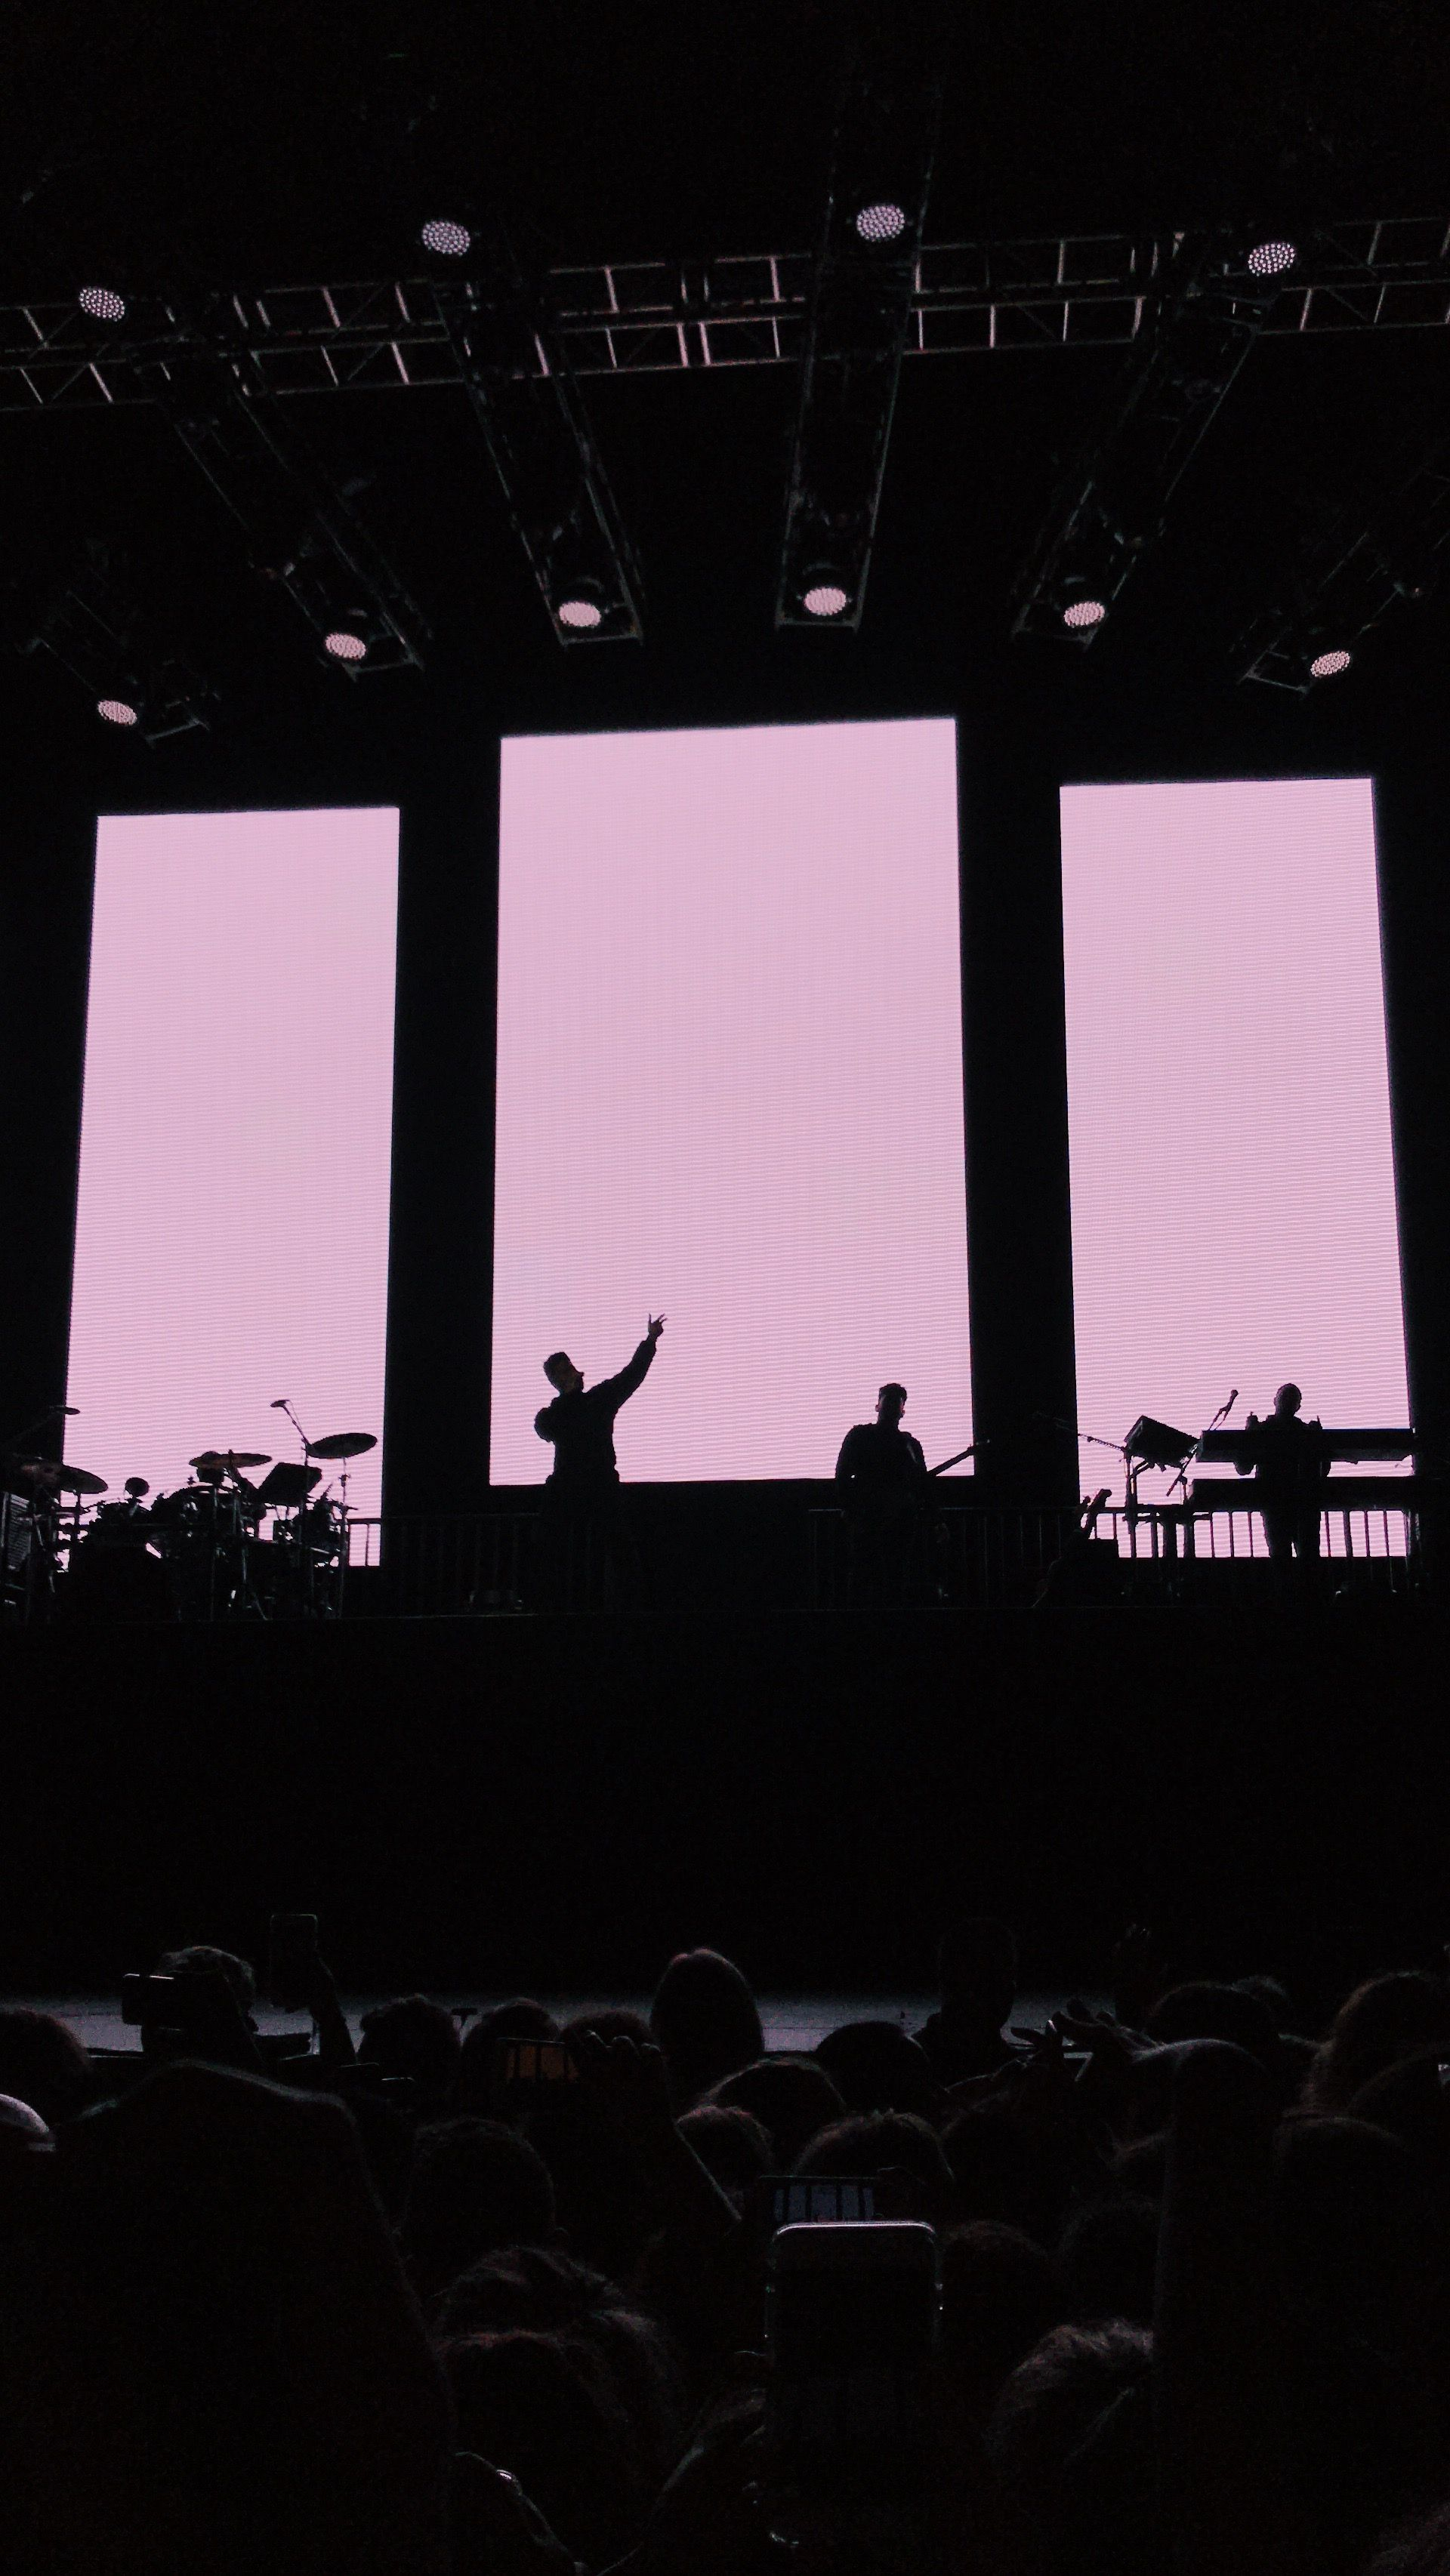 Pin By Armeyliana On Print The 1975 Tour The 1975 Wallpaper The 1975 Concert